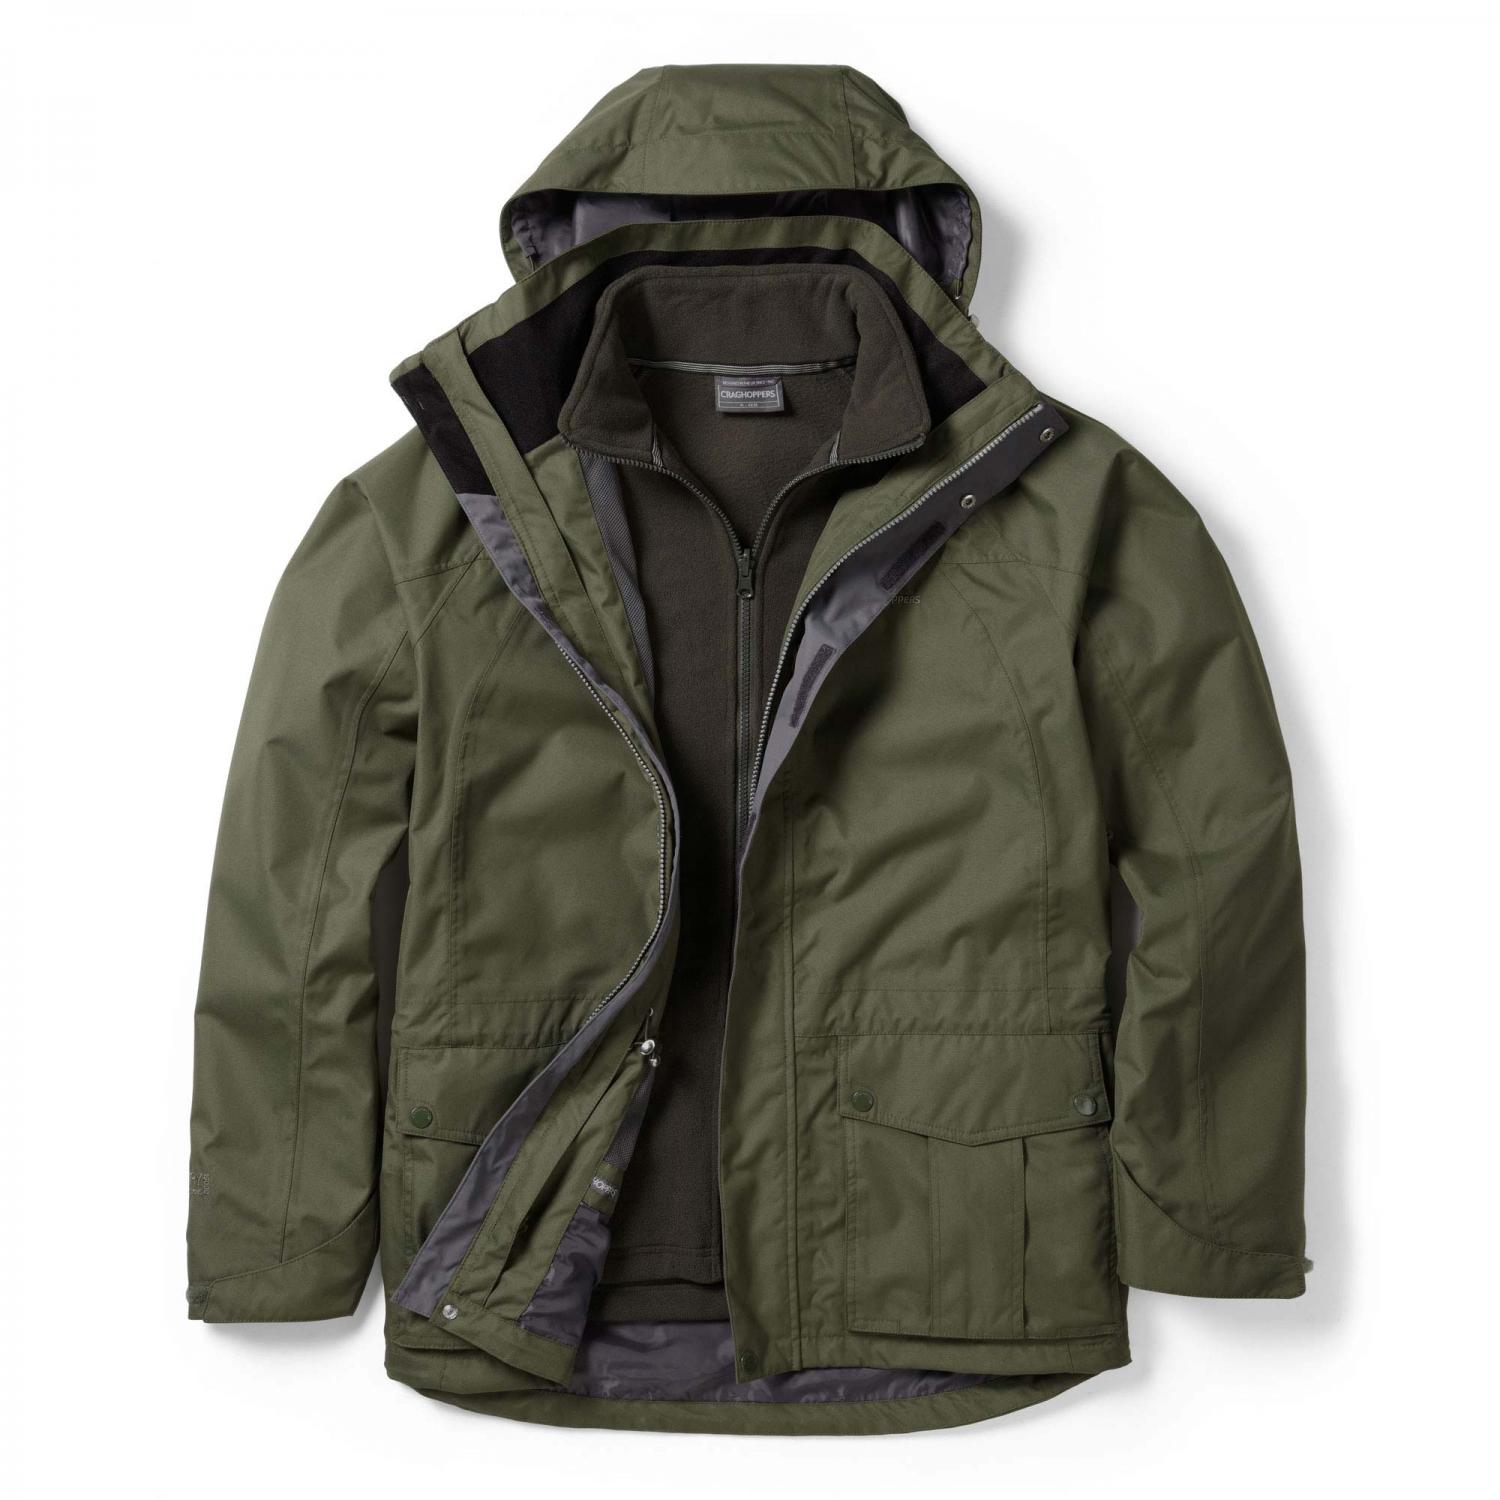 Kiwi 3 in 1 Jacket Parka Green